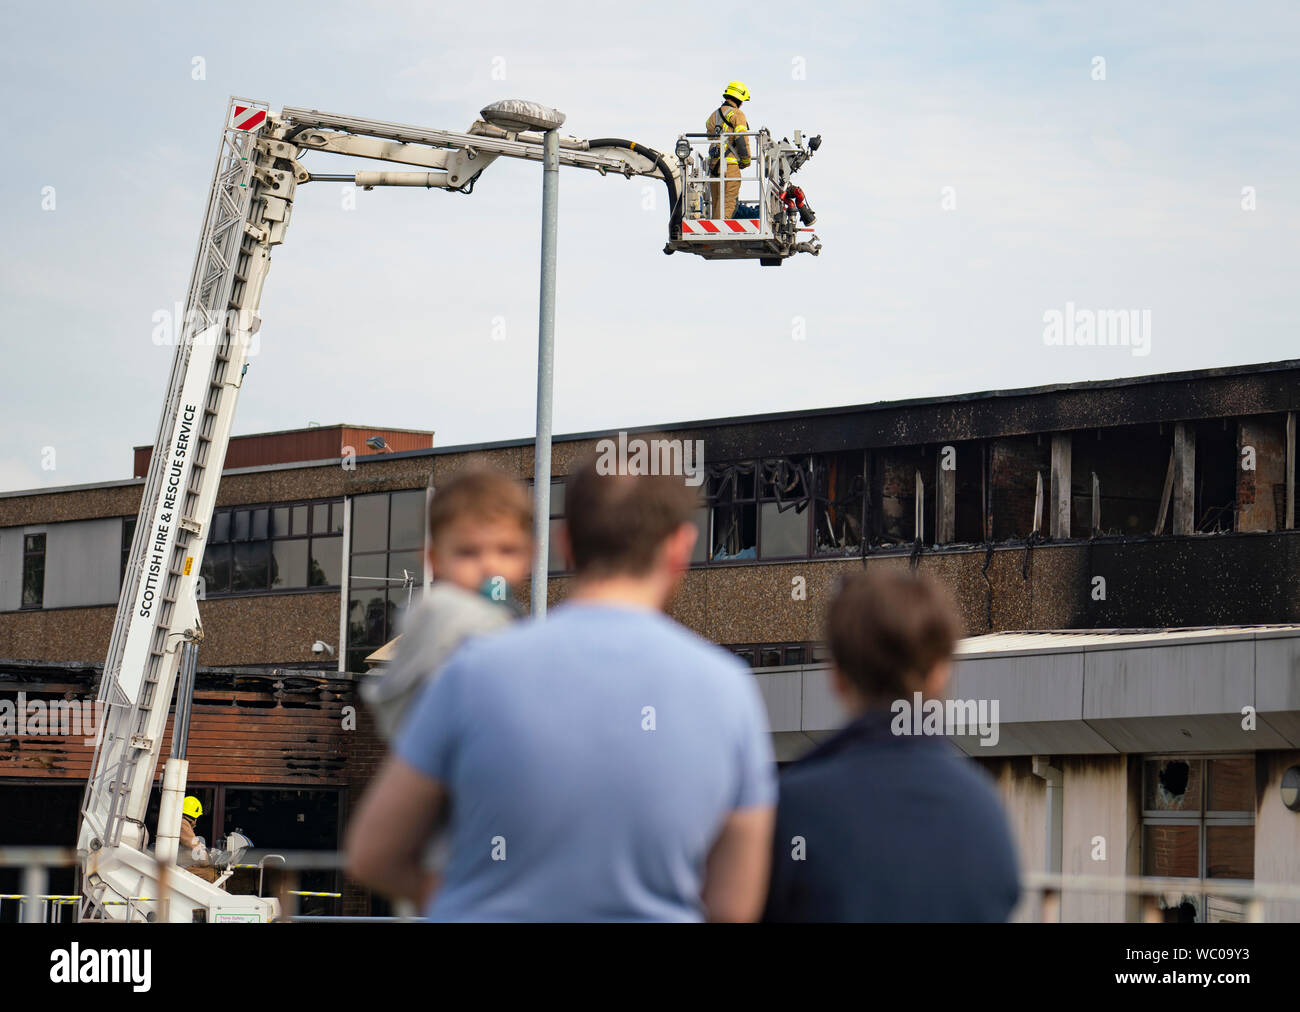 Dunfermline Fife Scotland Uk 27 August 2019 Scottish Fire Service Remain At Woodmill High School In Dunfermline Following A Large Fire At The School On Sunday Today It Was Announced That The